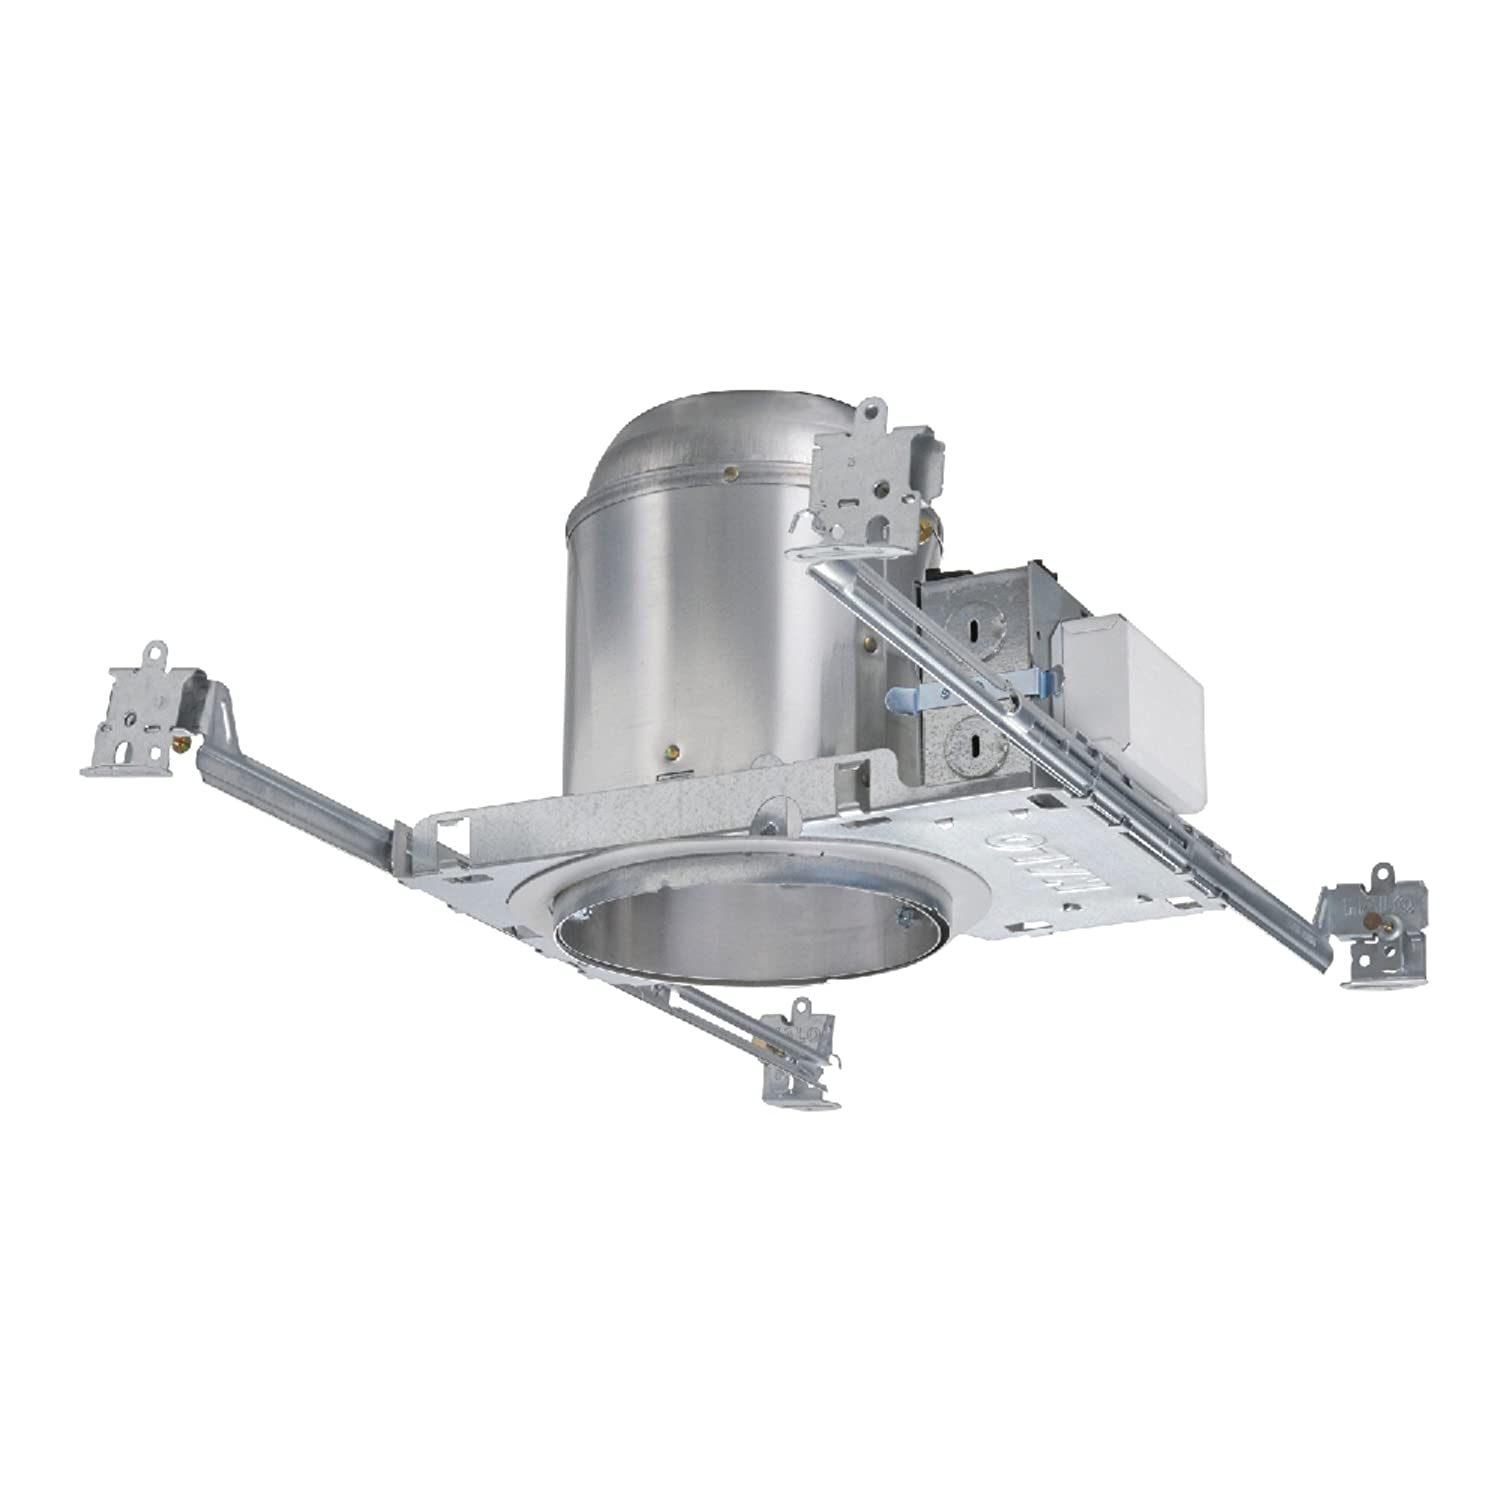 HALO H573ICAT1D CFL Recessed Lighting Dimmable New Construction IC Air-Tite Housing, 5 In, Aluminum EATON